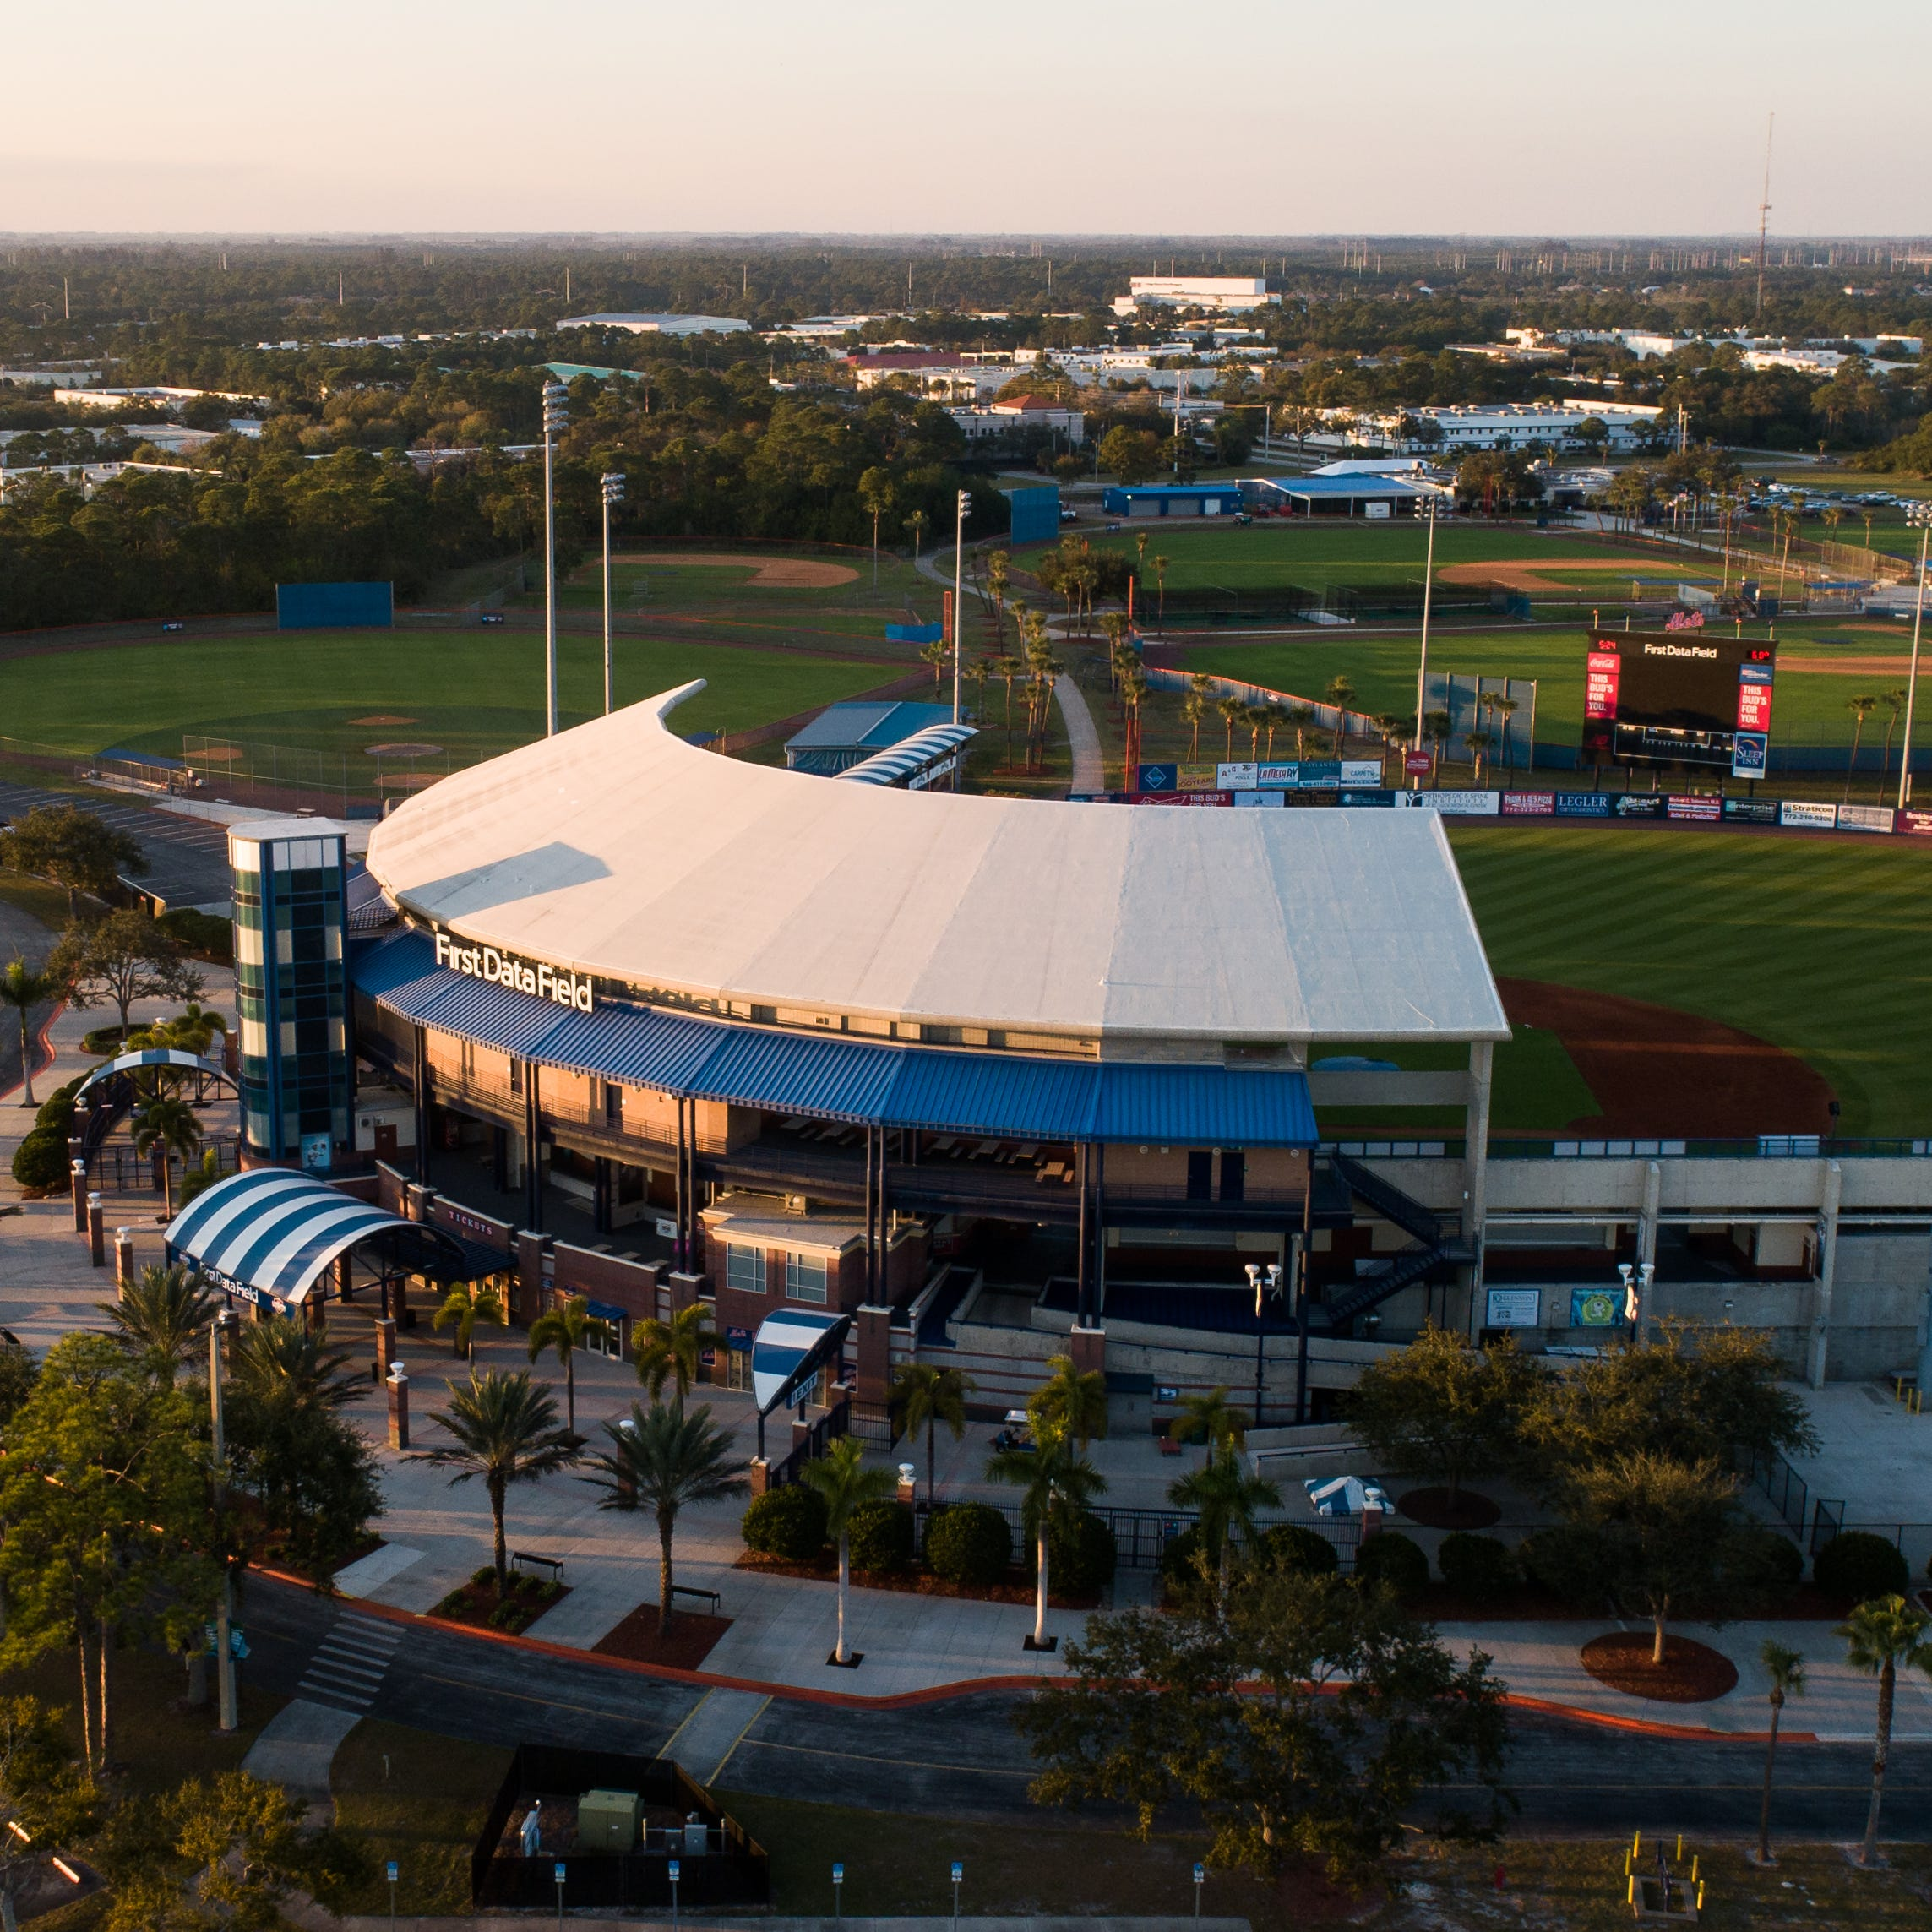 Stadium stalemate: New York Mets, St. Lucie County remain at odds over $55 million renovation project